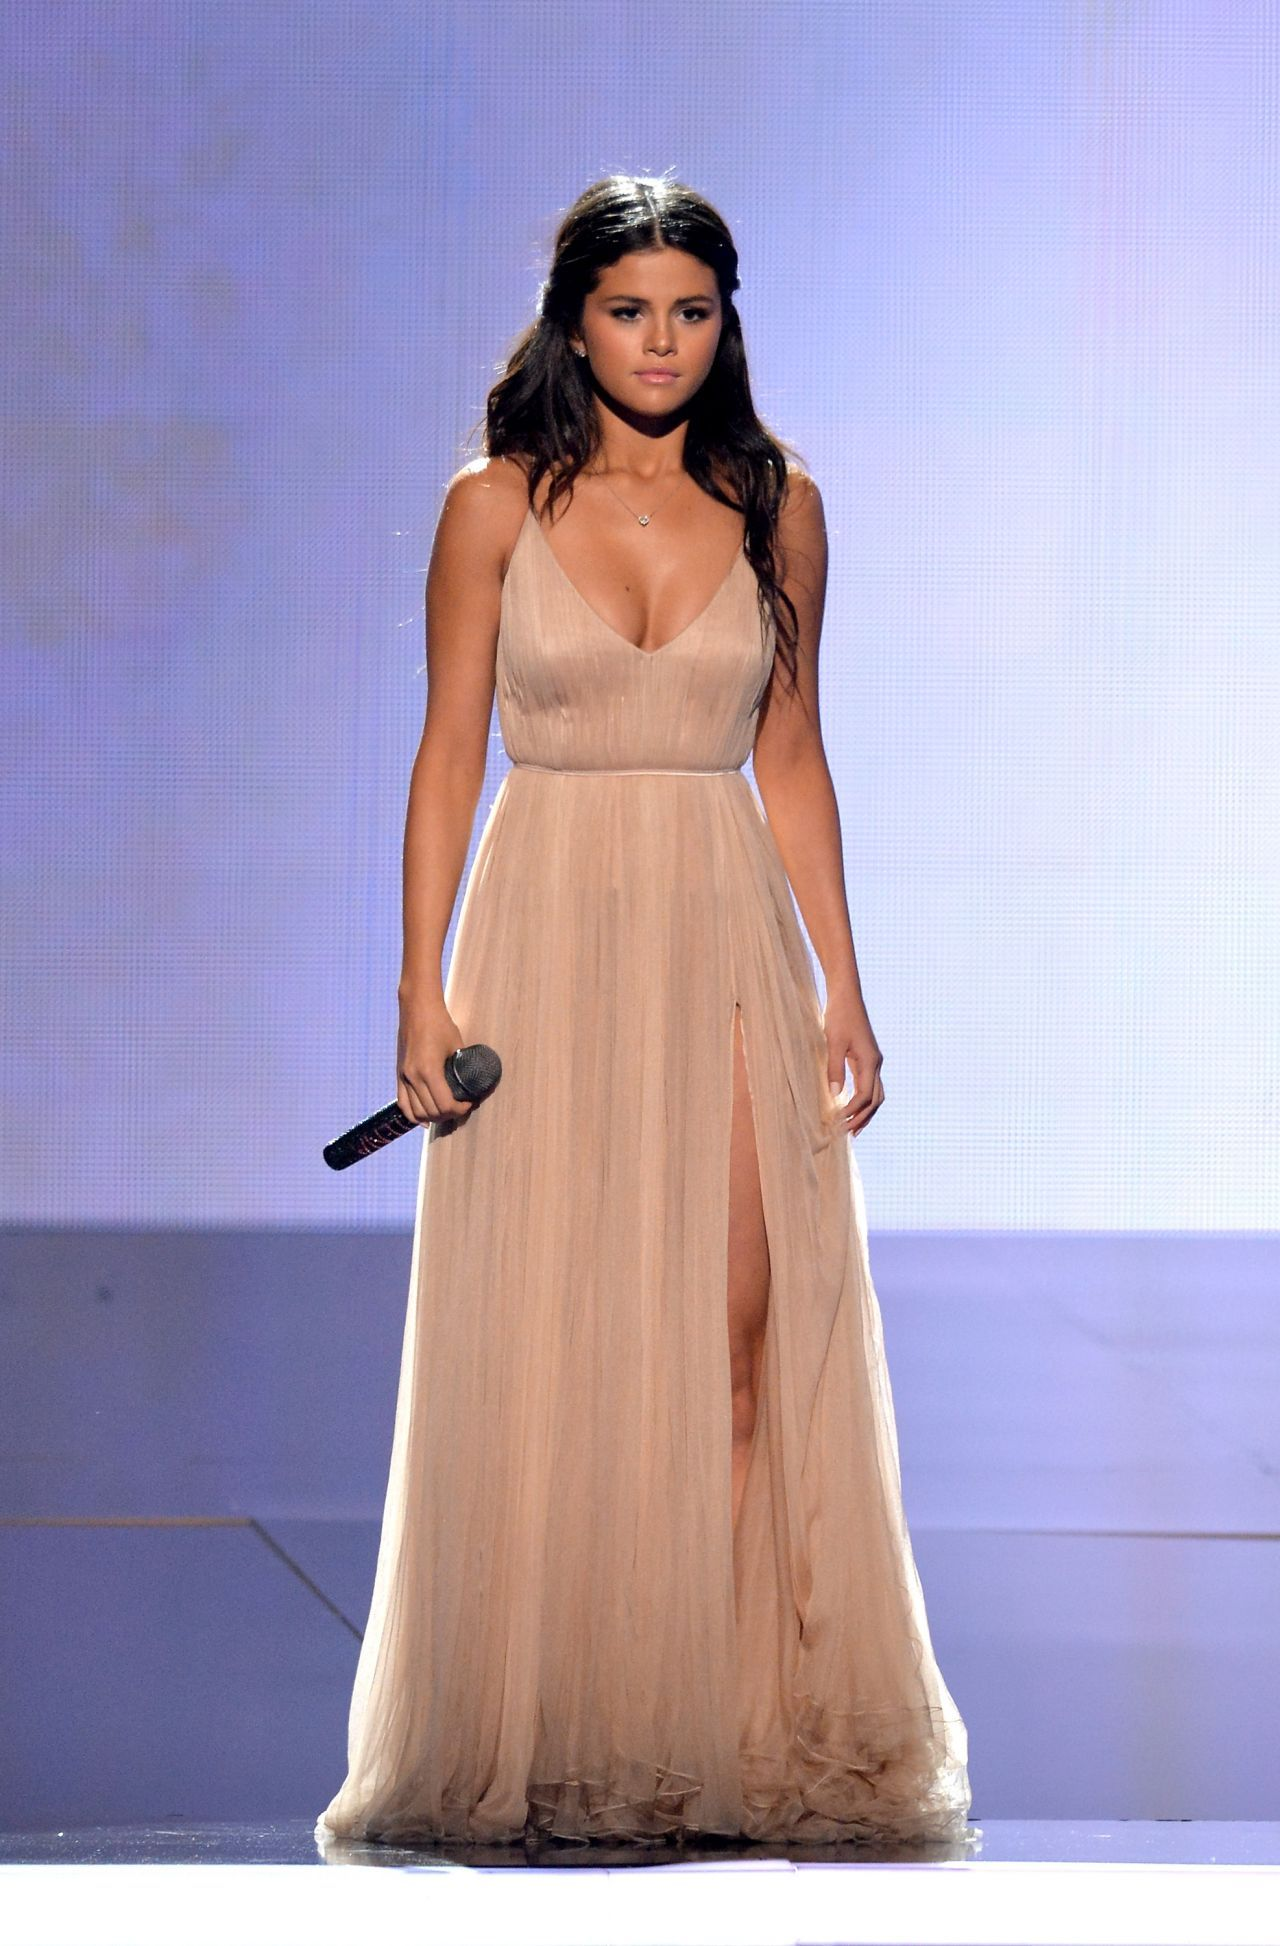 Selena gomez champagne evening prom dress american music awards